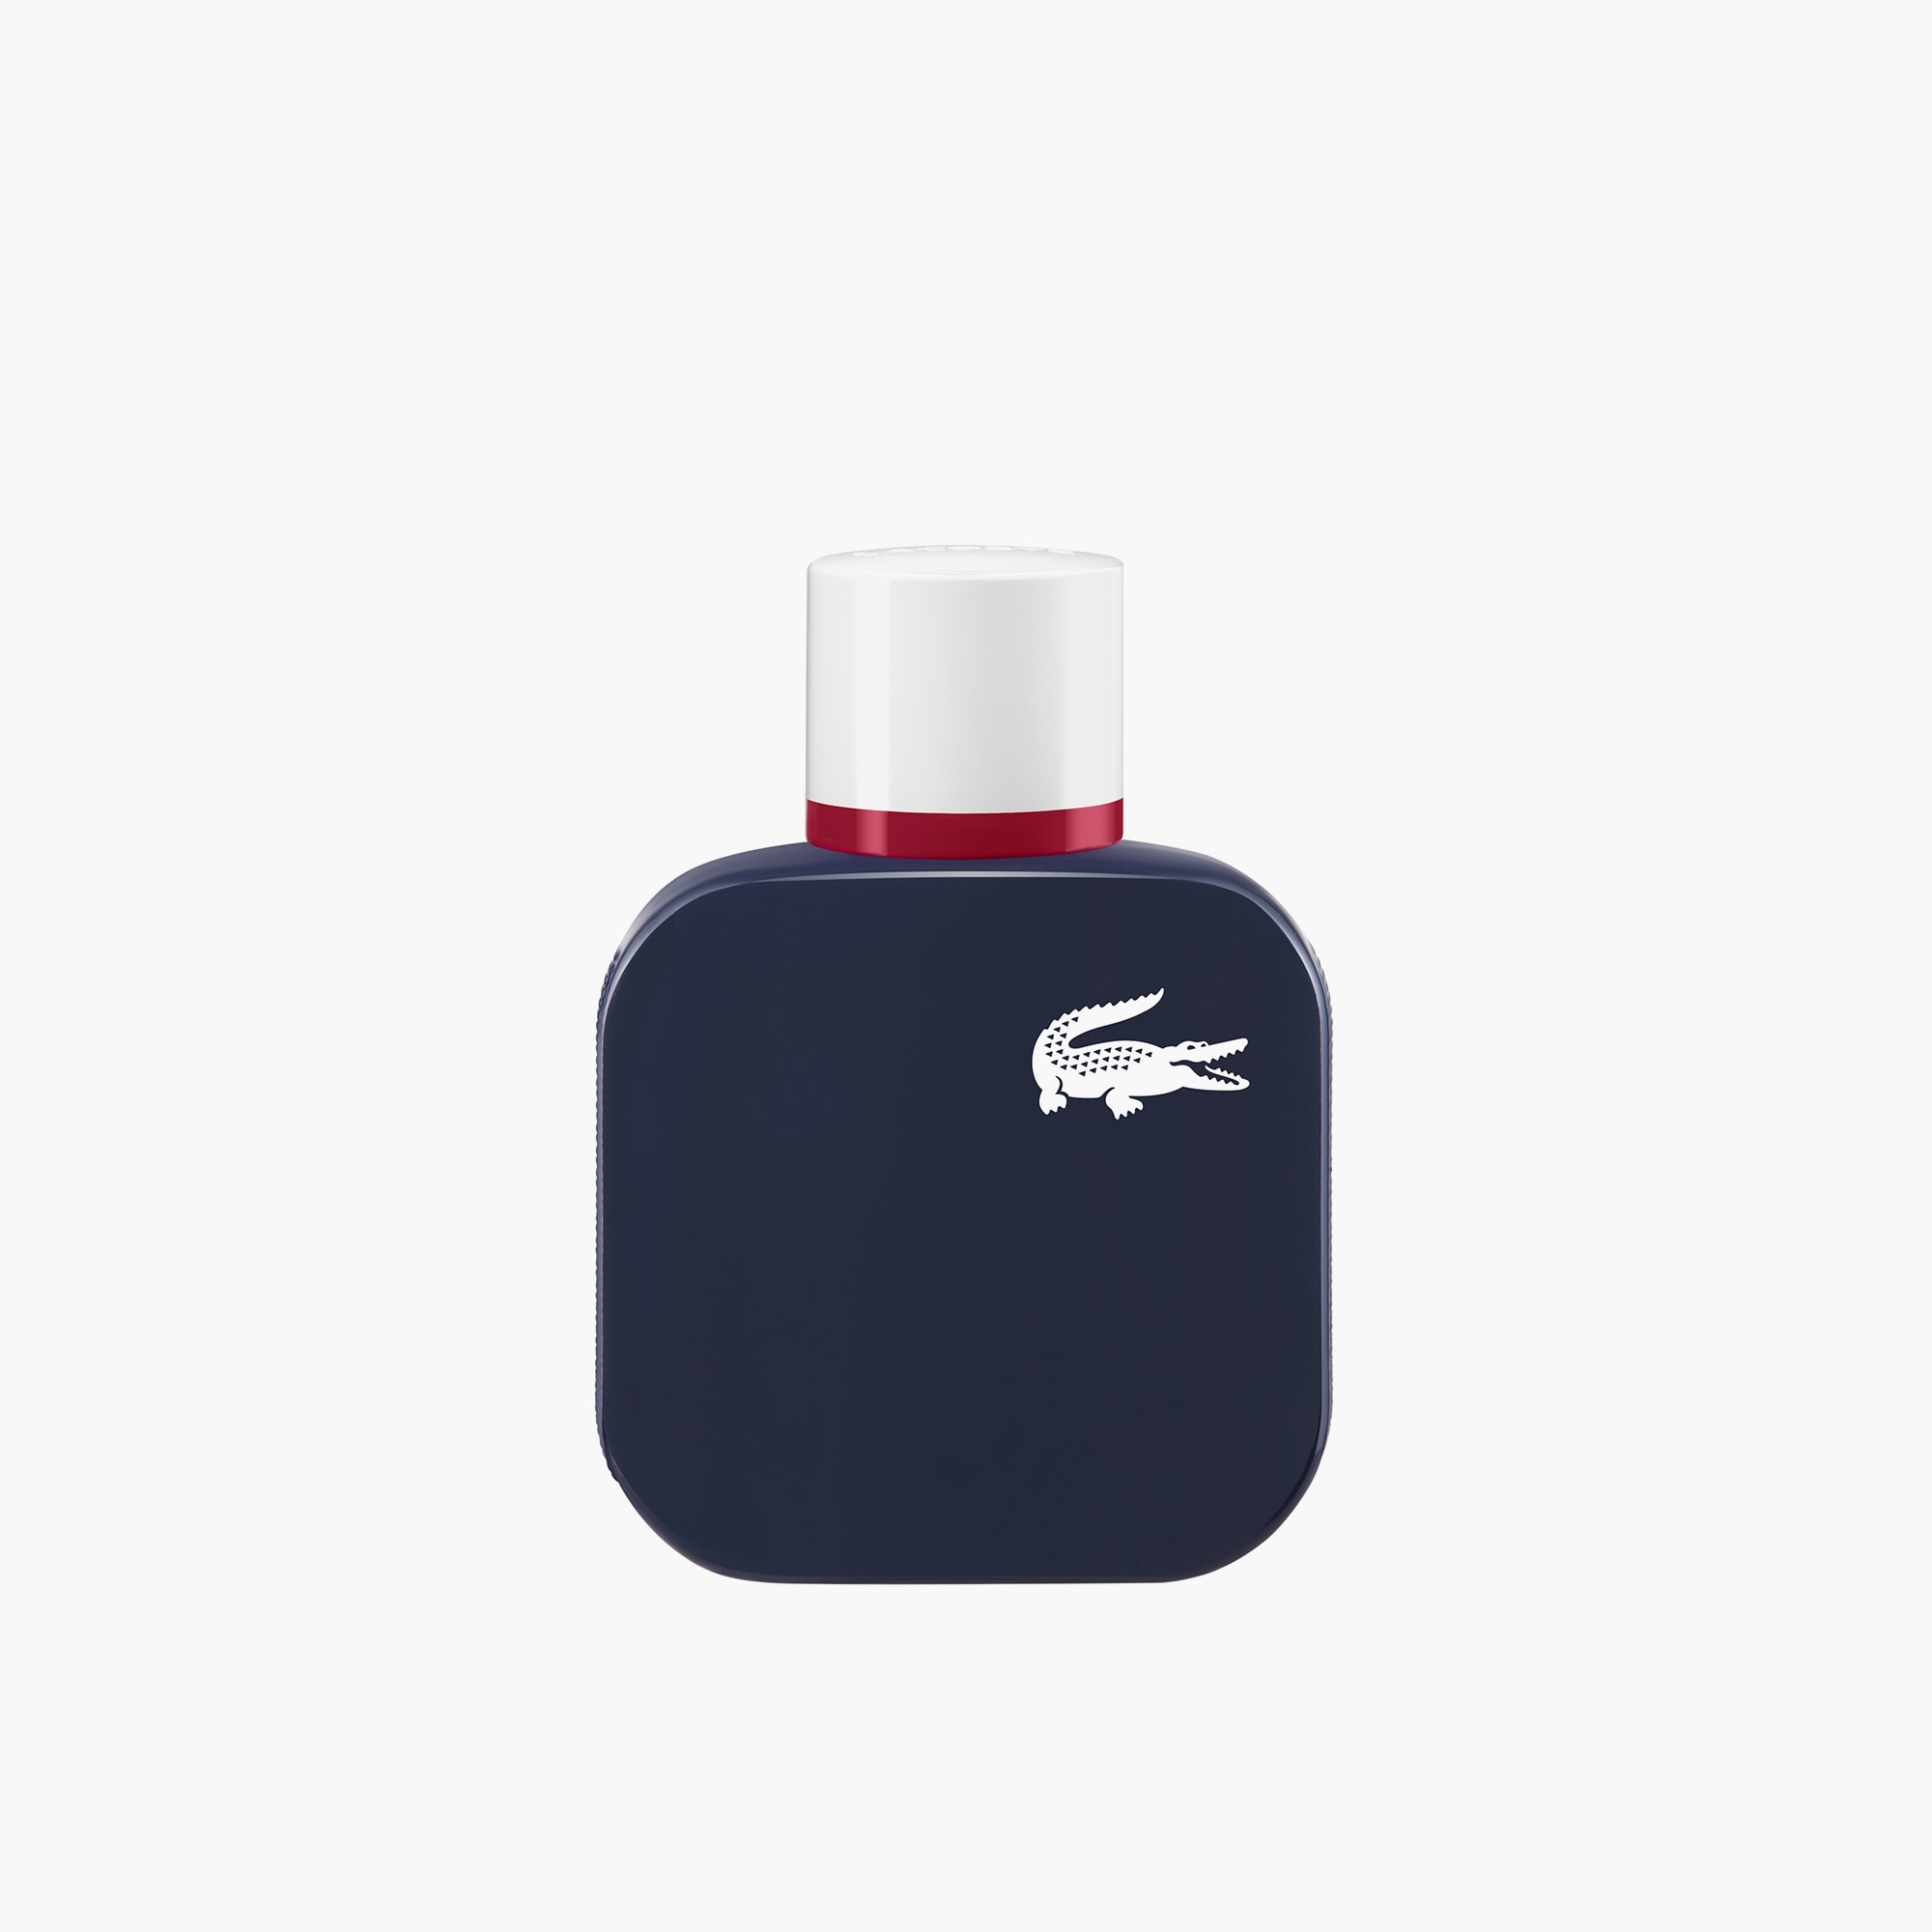 c25ba0e3f9 Lacoste Perfumes and Colognes For Men | LACOSTE